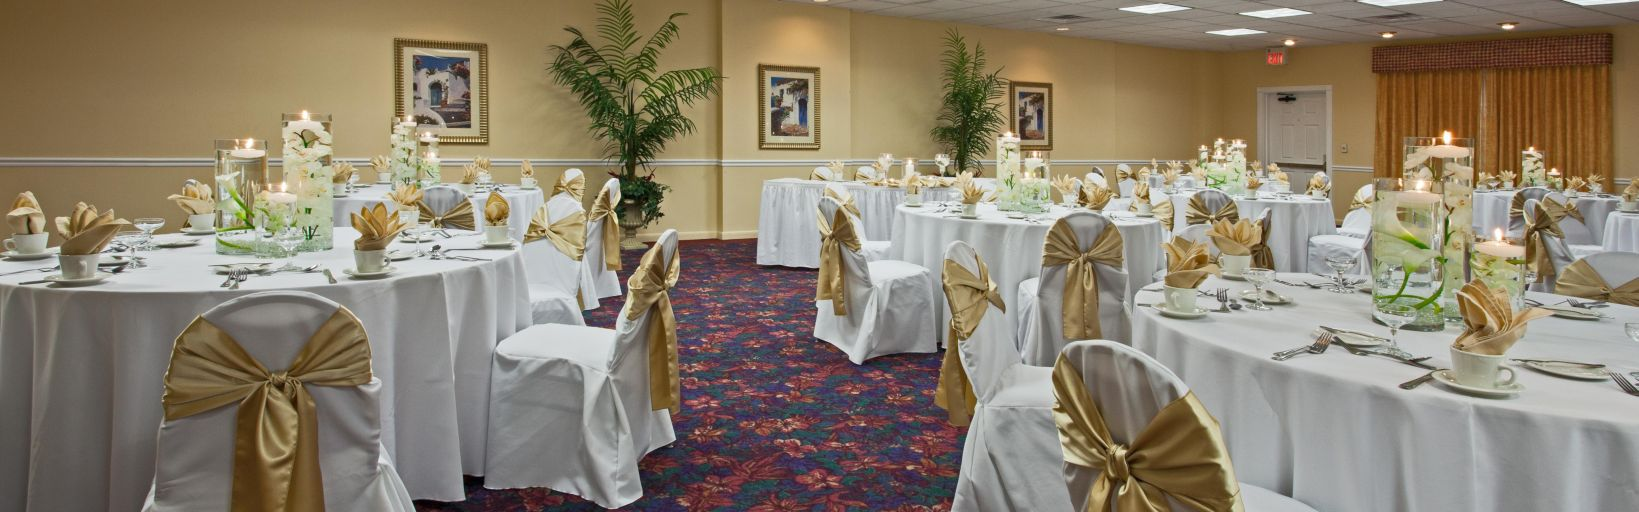 Our Pelican Sandpiper Room Is Perfect For Meetings And Weddings